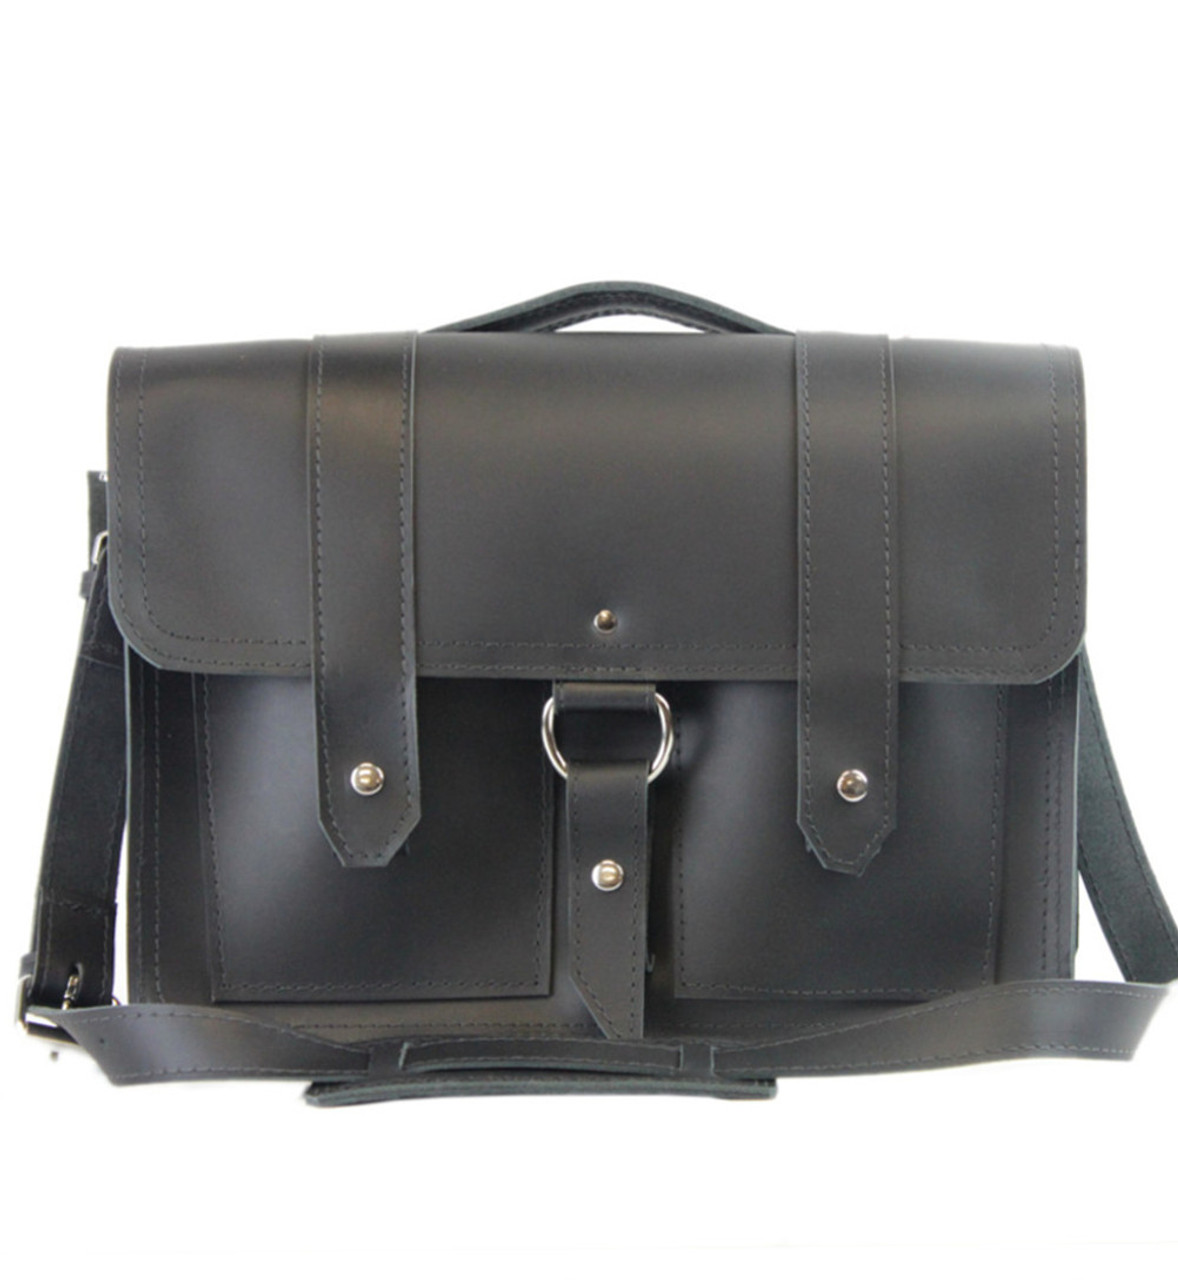 11400aeda6fa 15 Best Weekender Bags for Men on The Go - The Trend Spotter